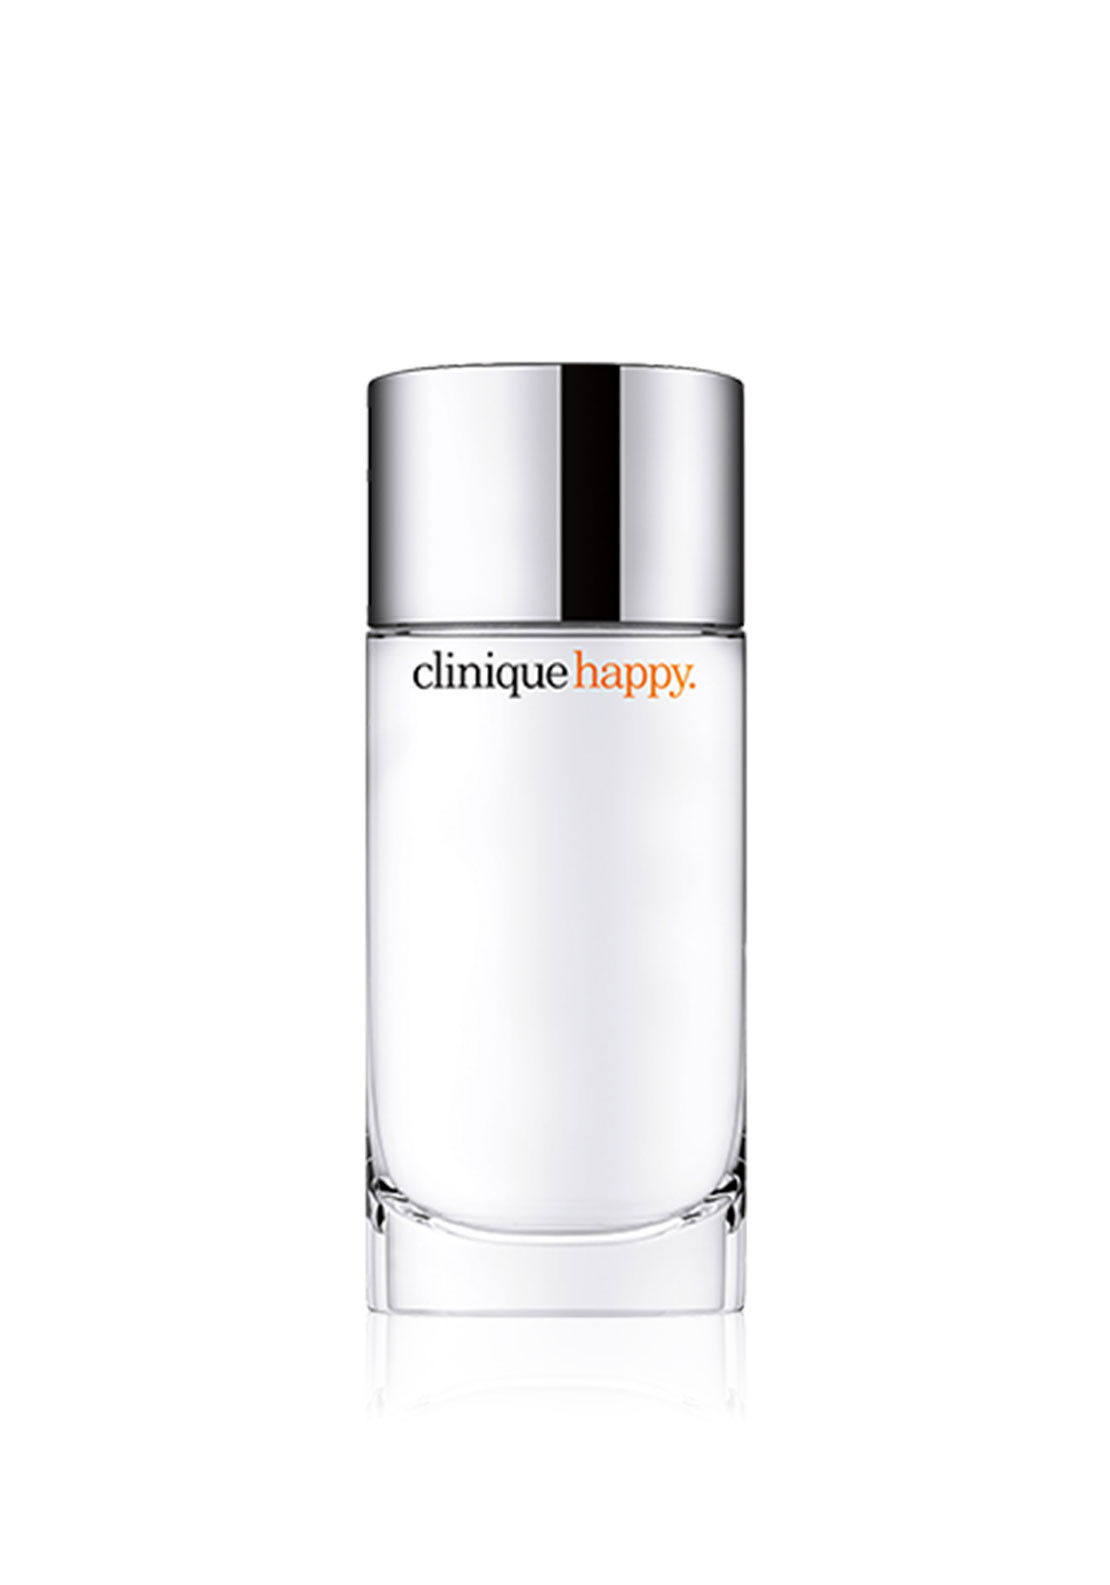 Clinique Happy For Women Perfume Spray, 100ml